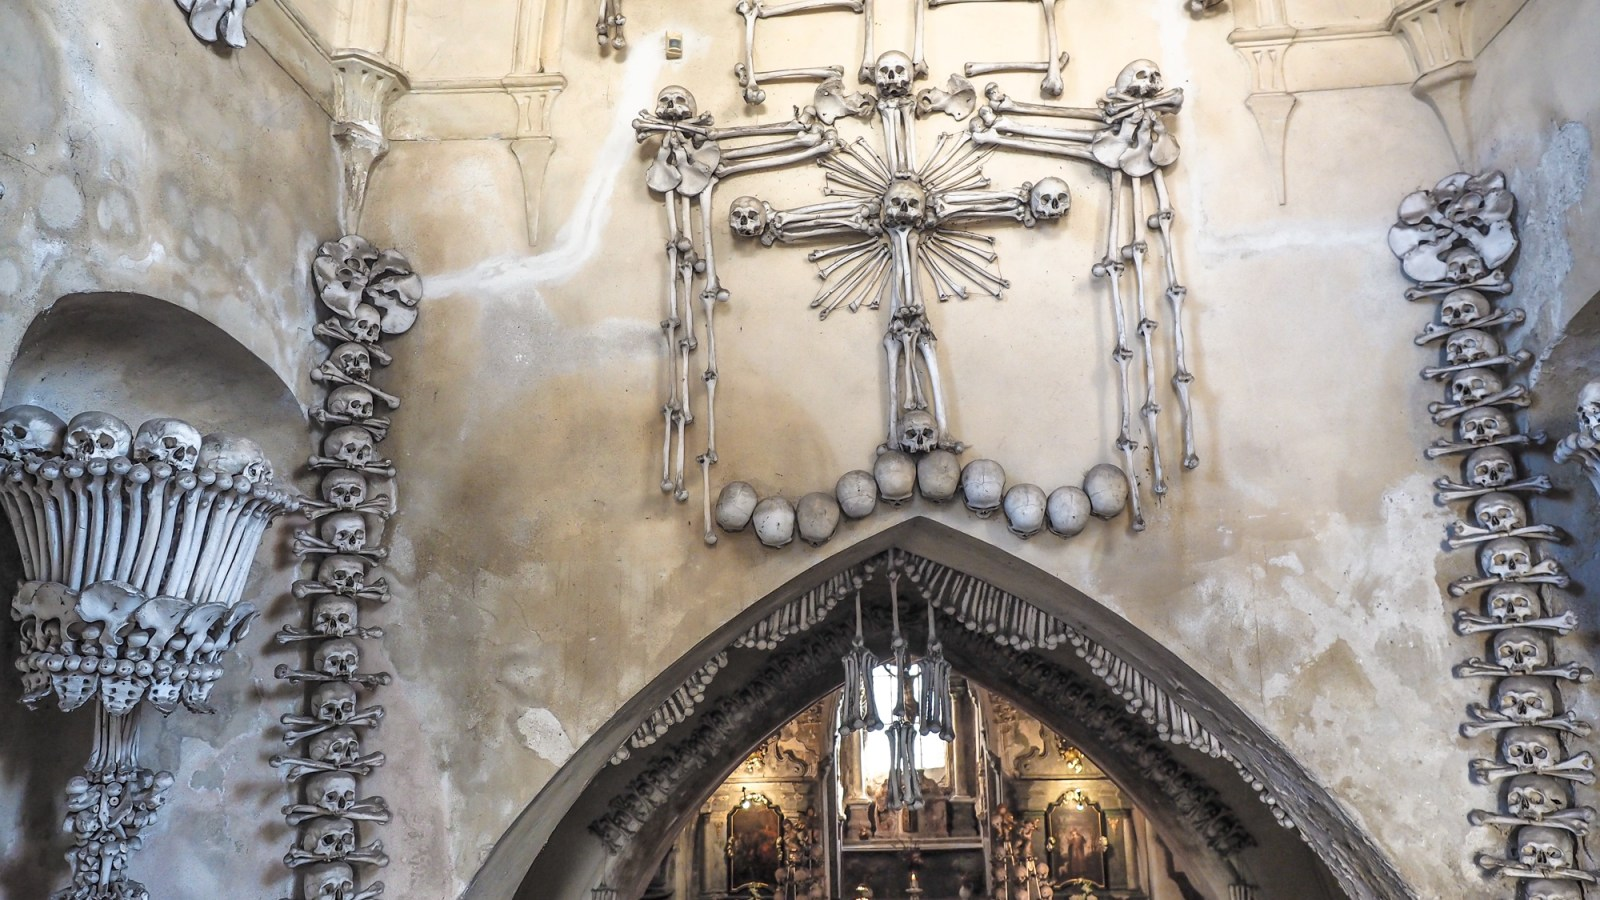 The Sedlec Ossuary in Kutná Hora, Czech Republic // One humerus photo essay on the day trip from Prague to see the bone church